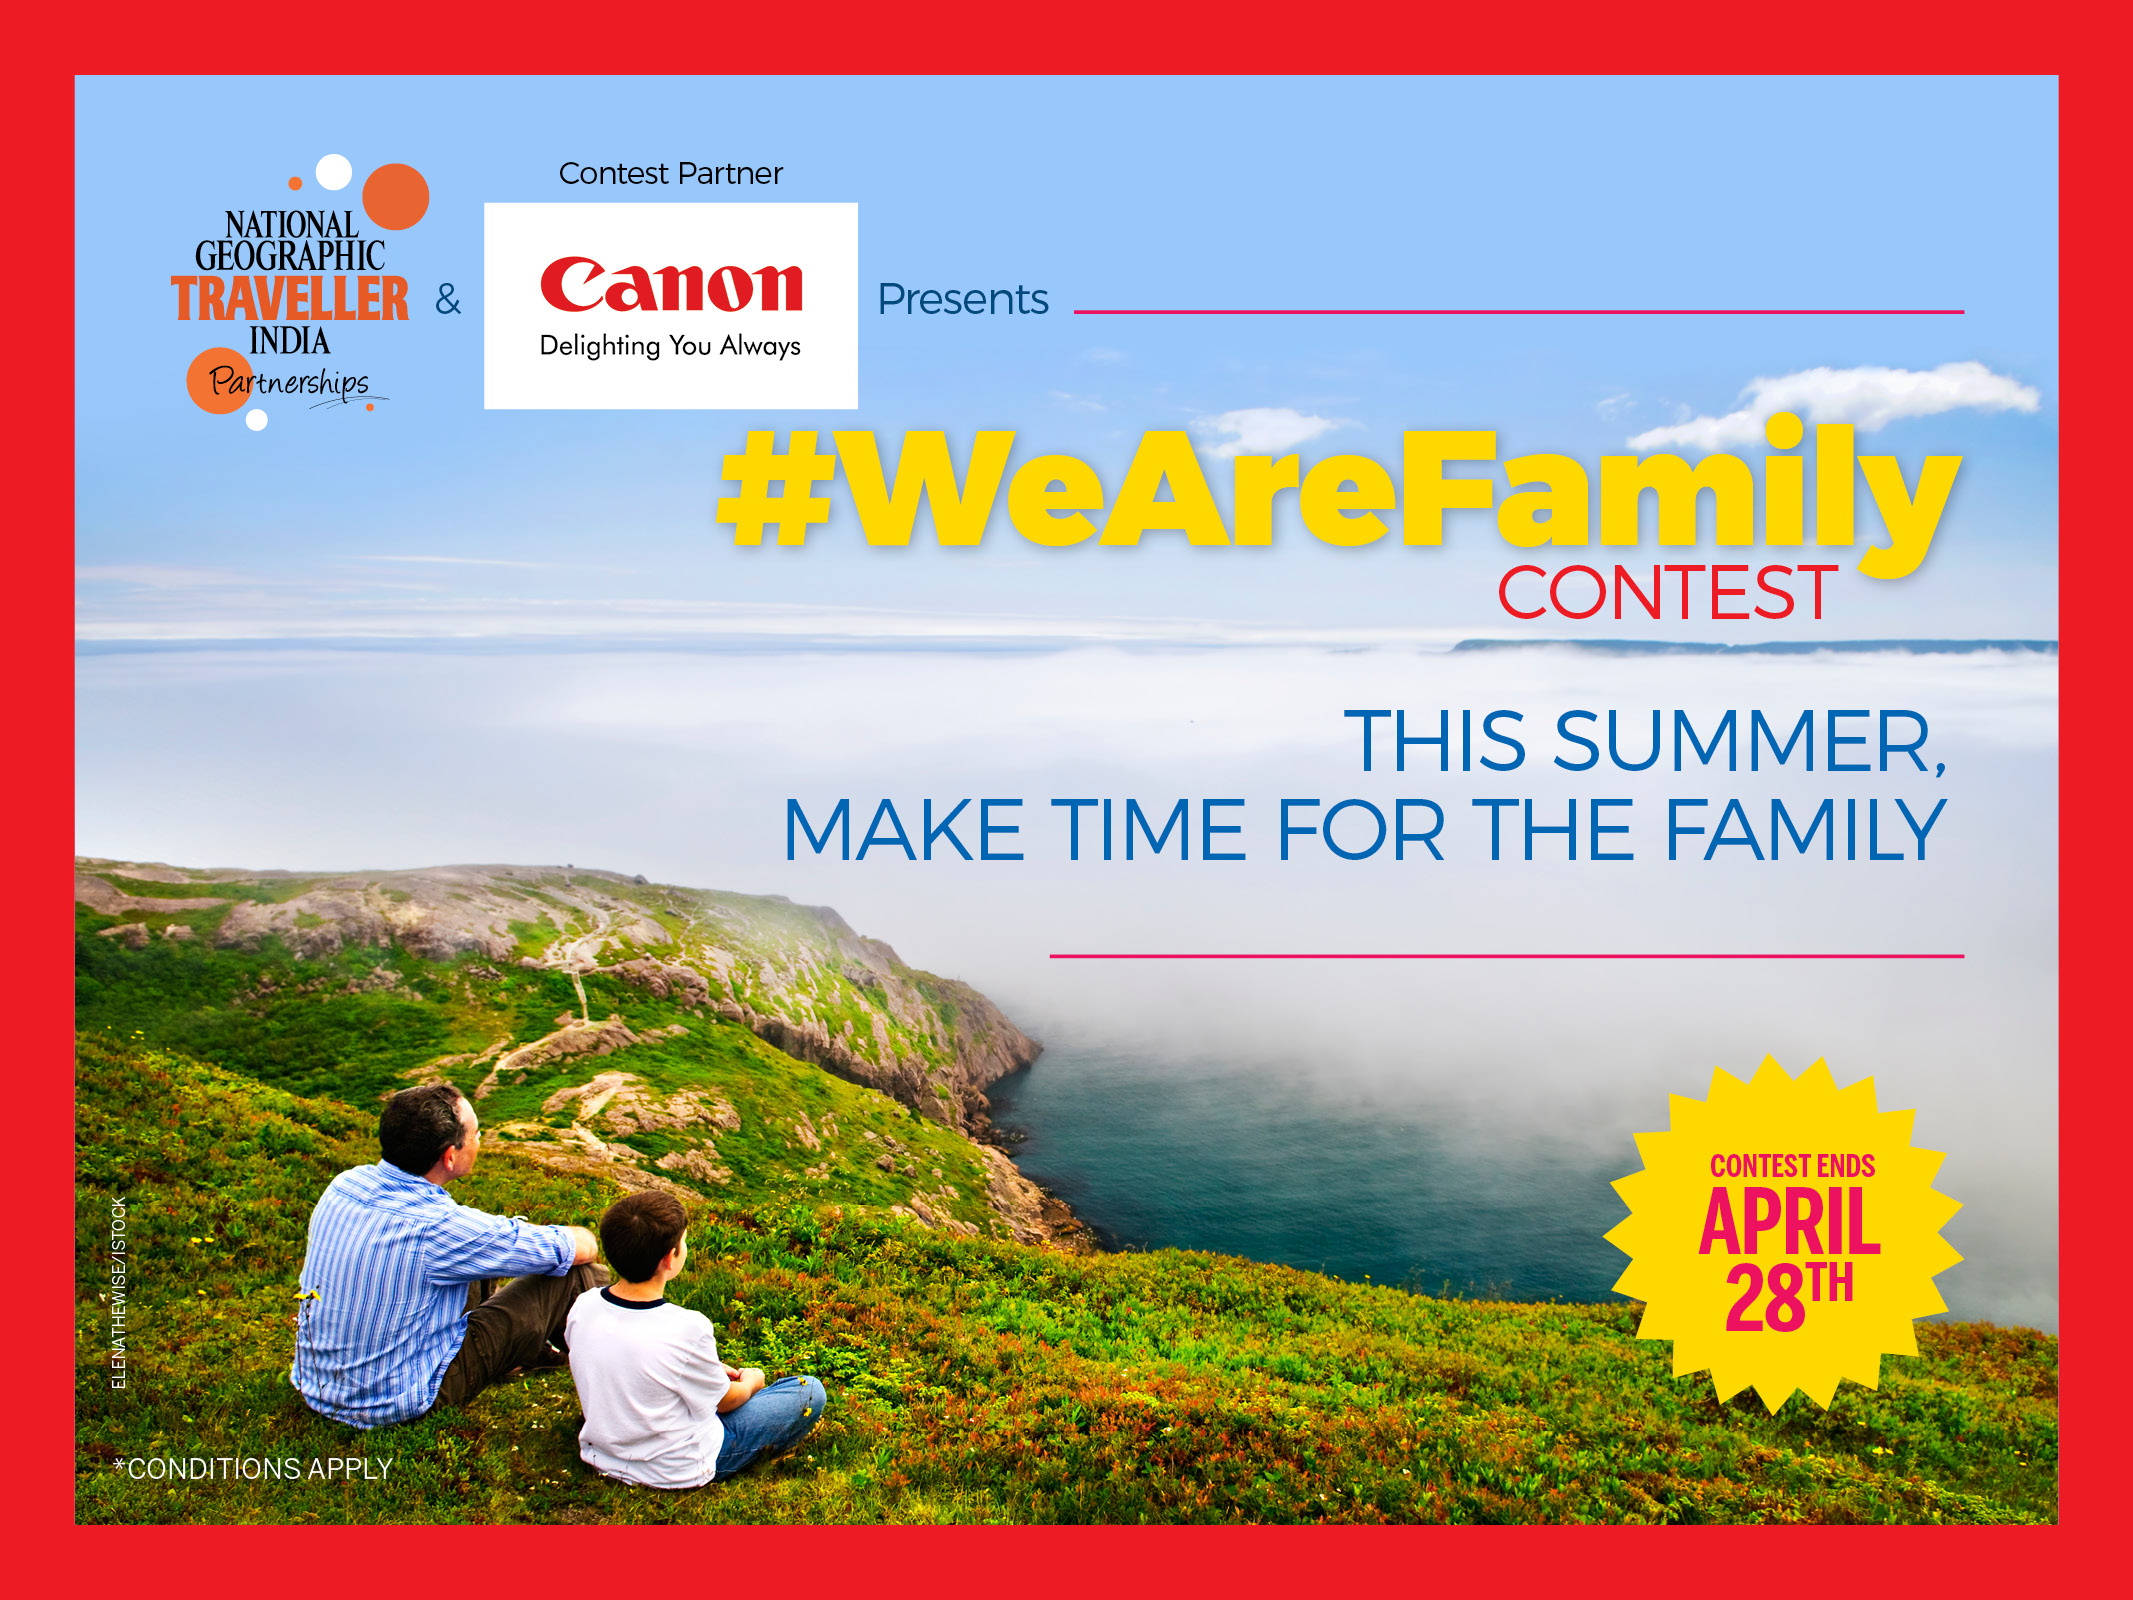 Hurry! Contest ends April 28th 2017.